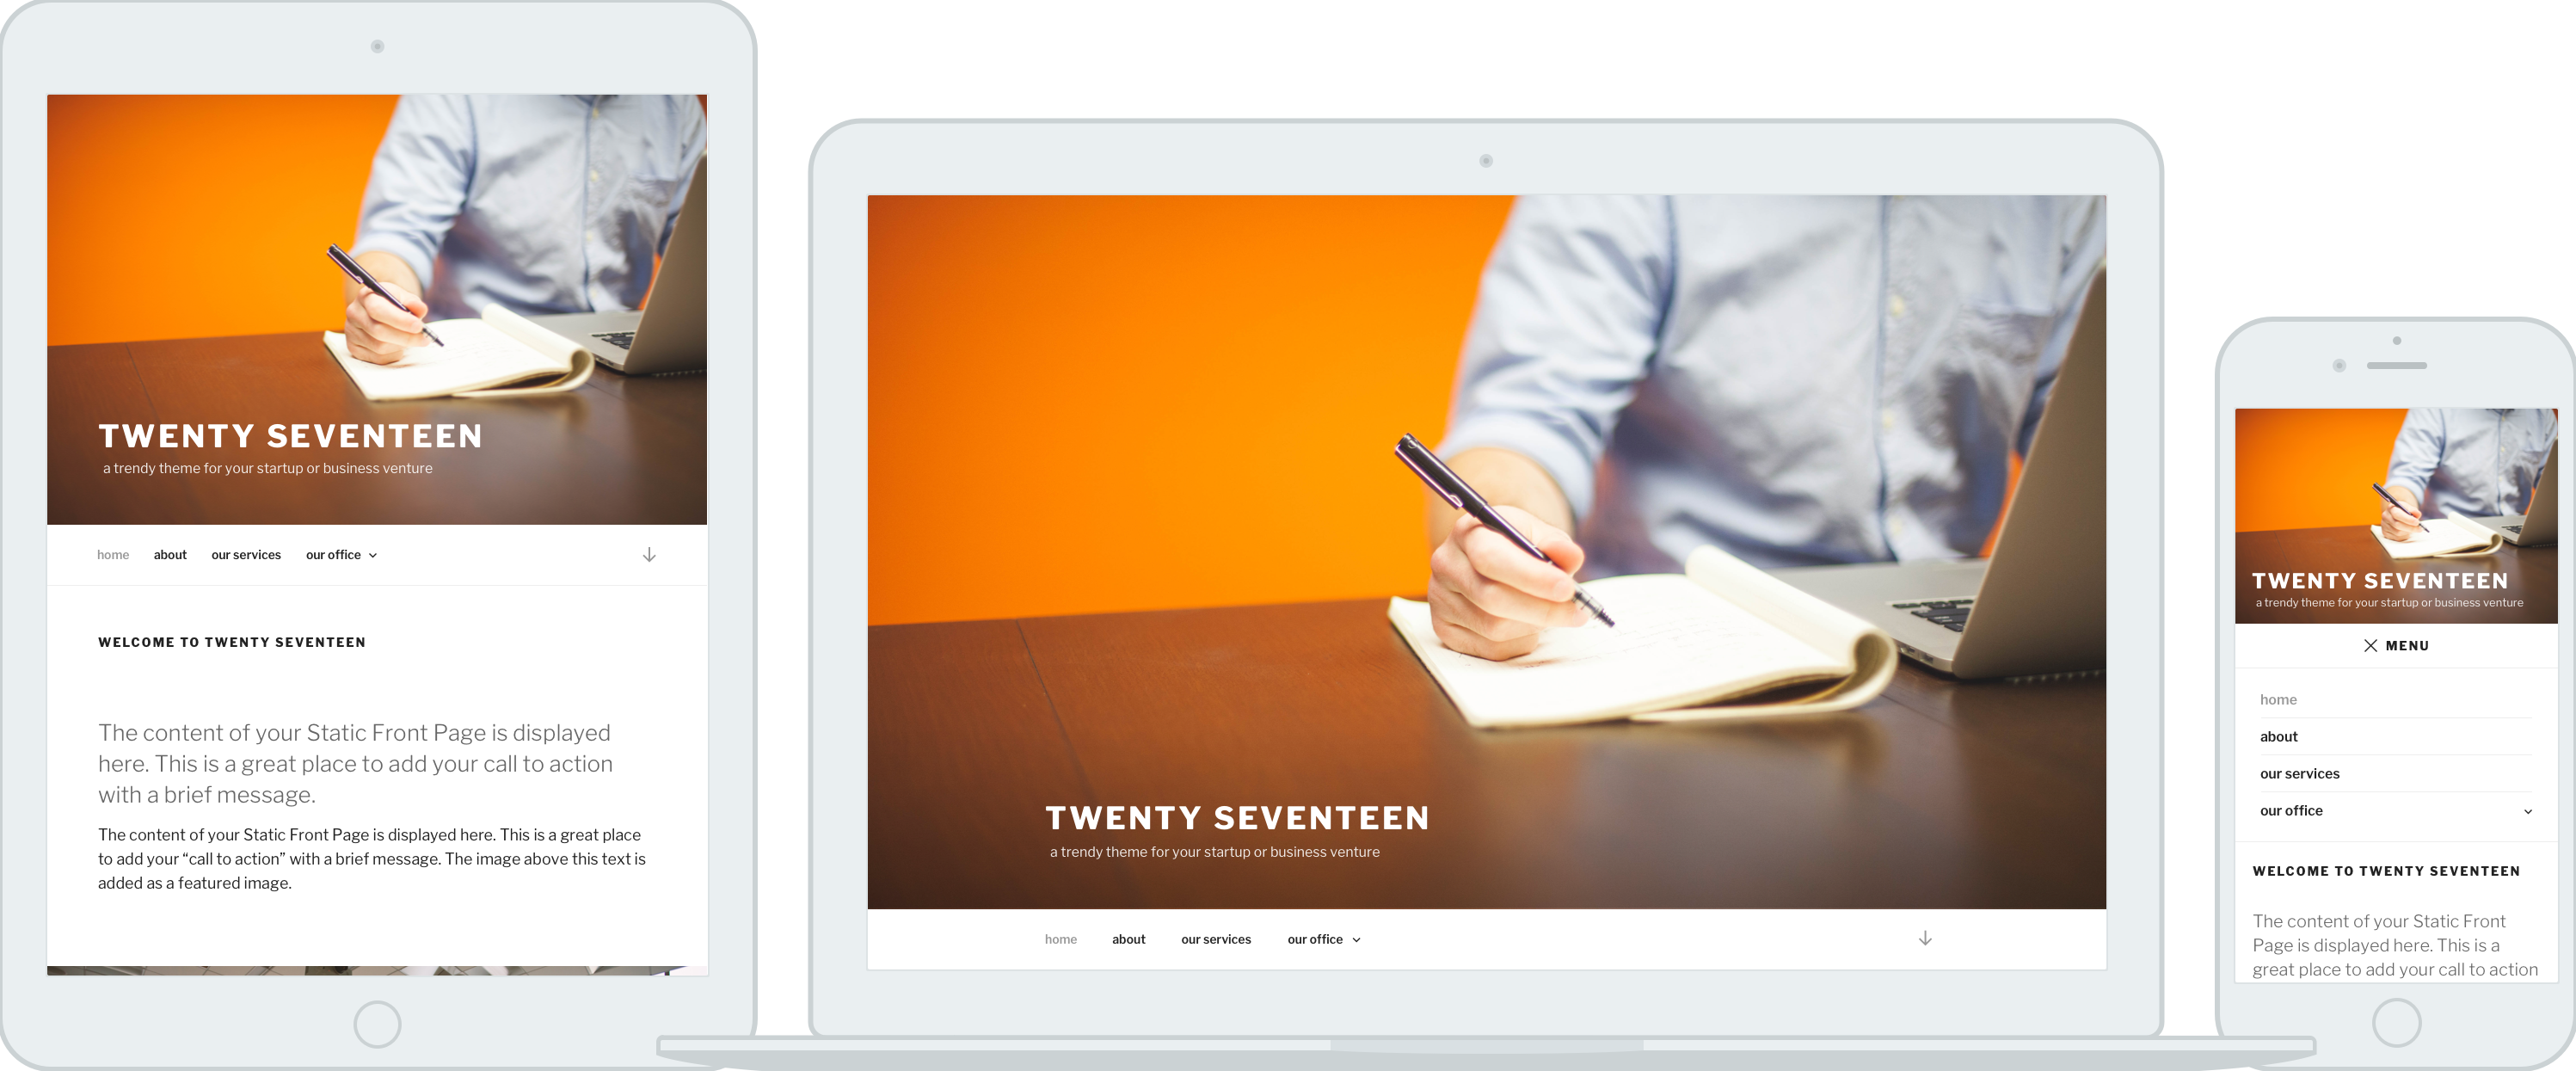 say hello to twenty seventeen make wordpress core